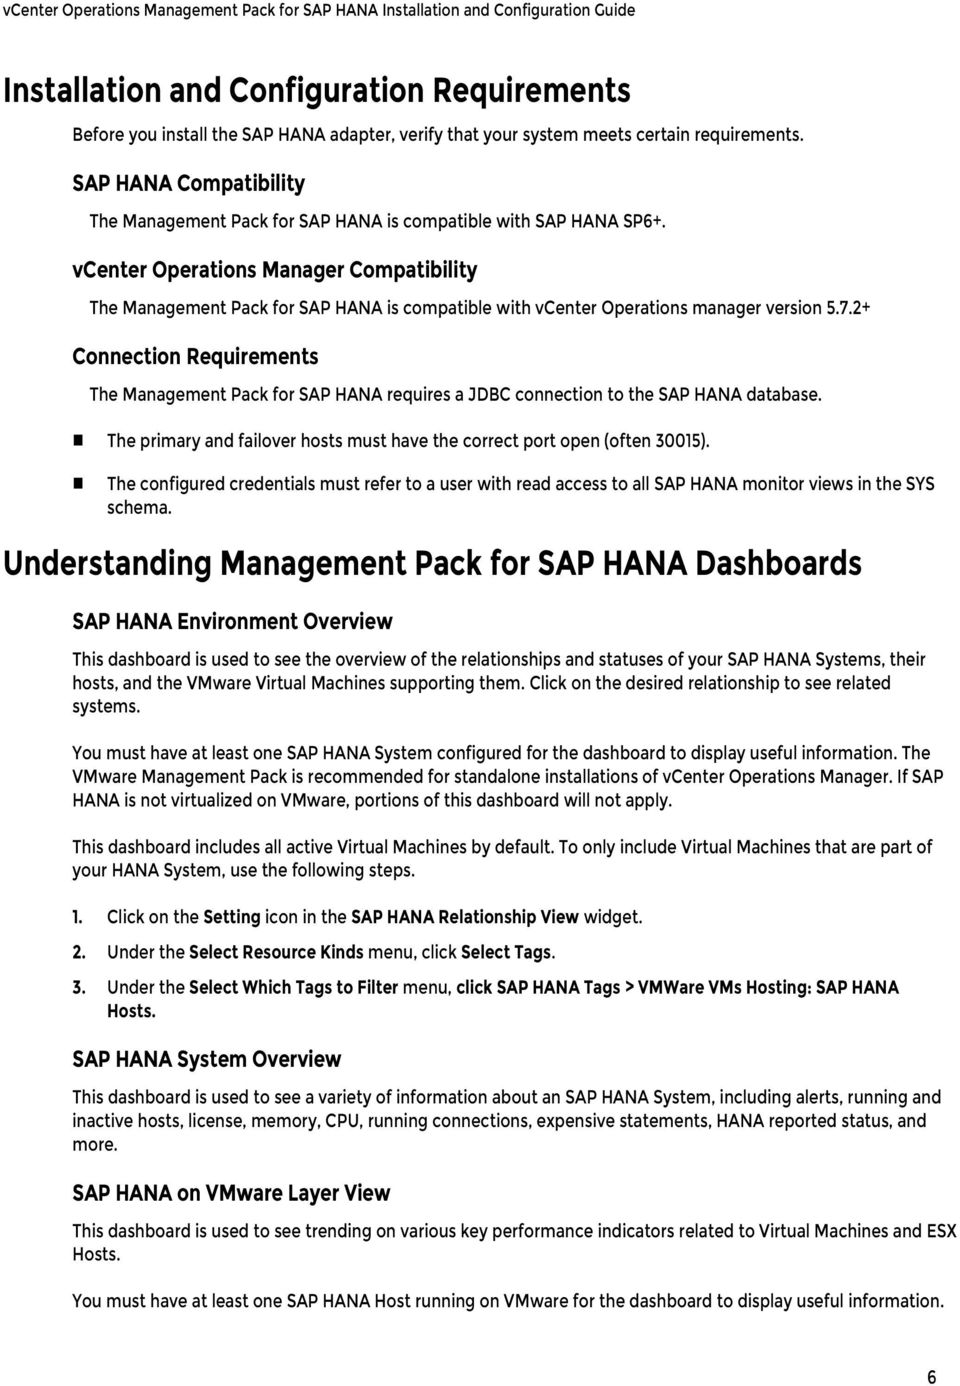 vcenter Operations Manager Compatibility The Management Pack for SAP HANA is compatible with vcenter Operations manager version 5.7.